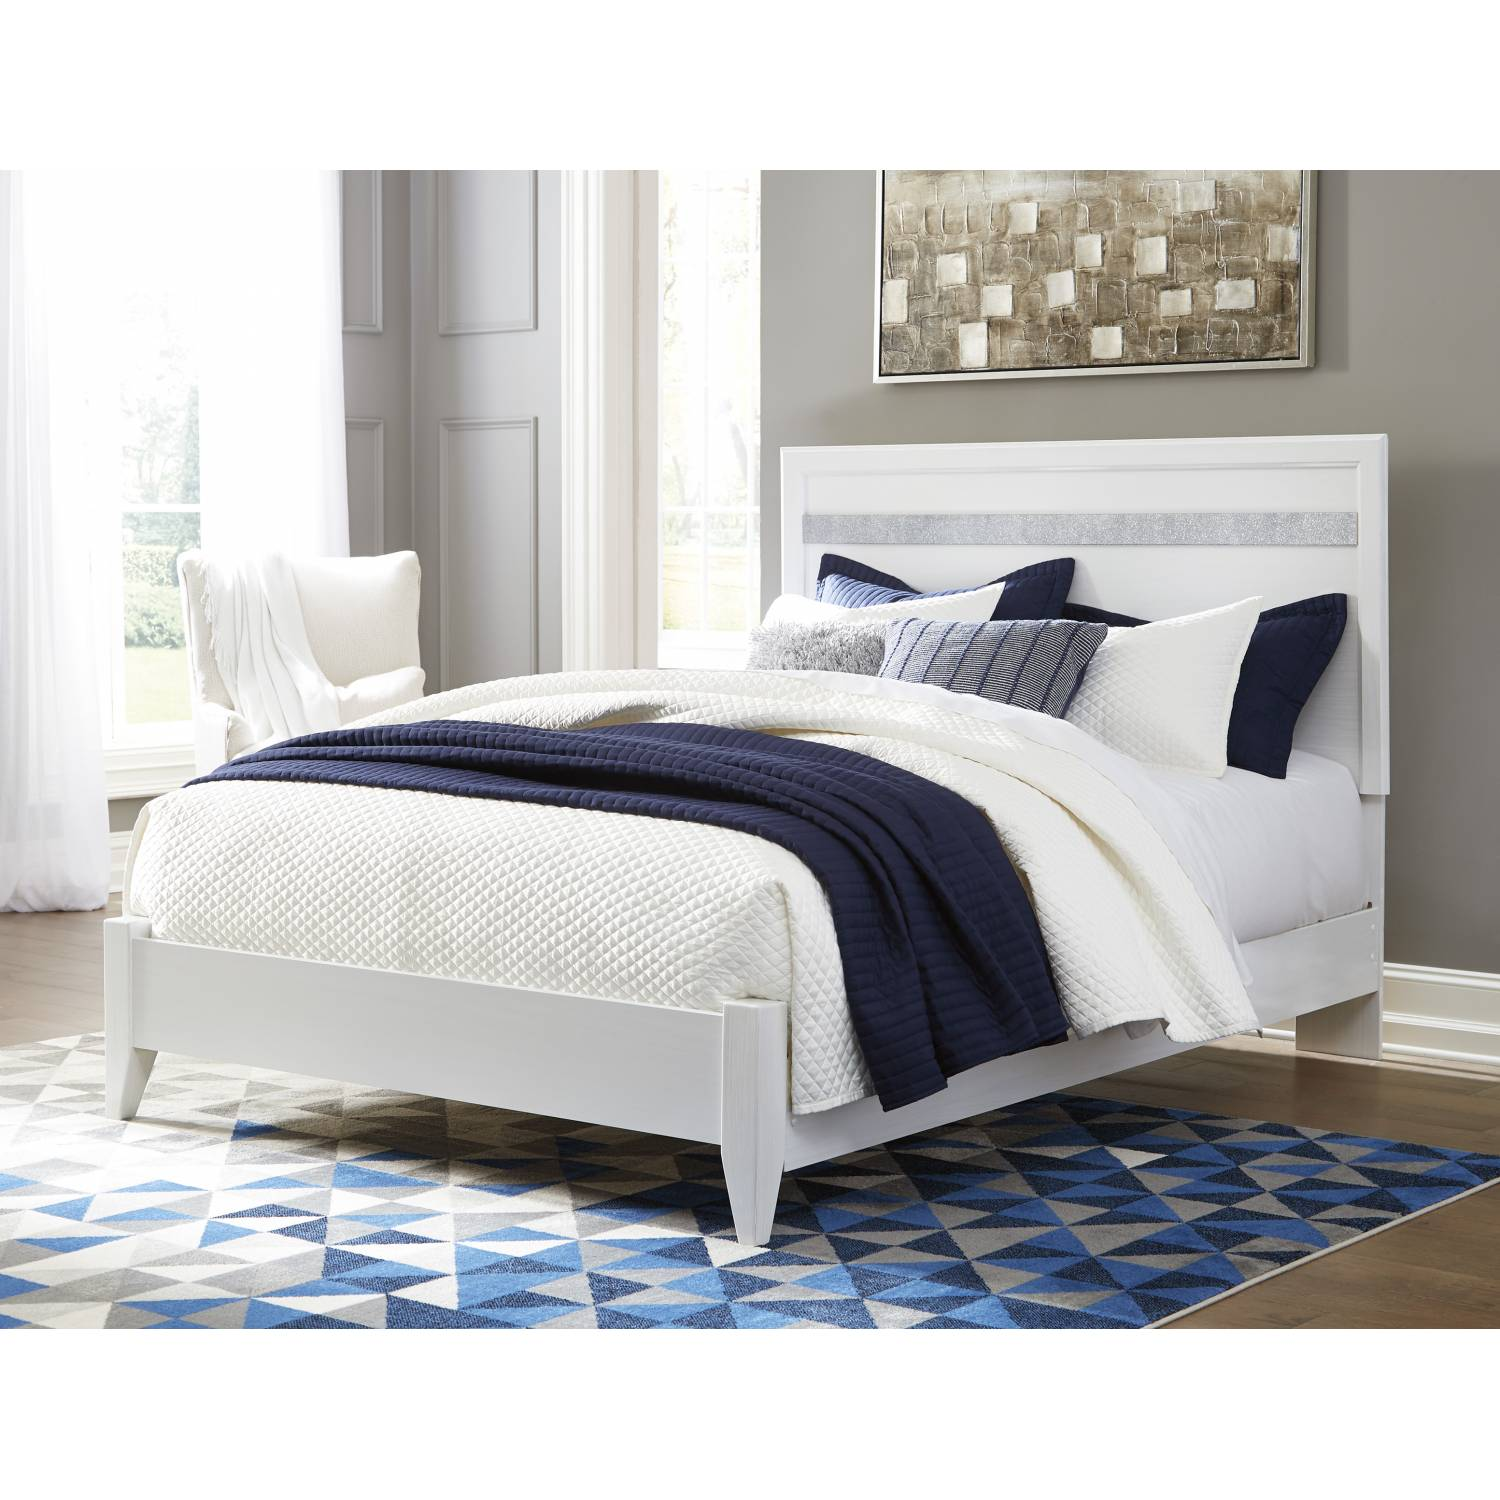 Ashley Furniture Orange County Ca: B302 Jallory Queen Panel Bed